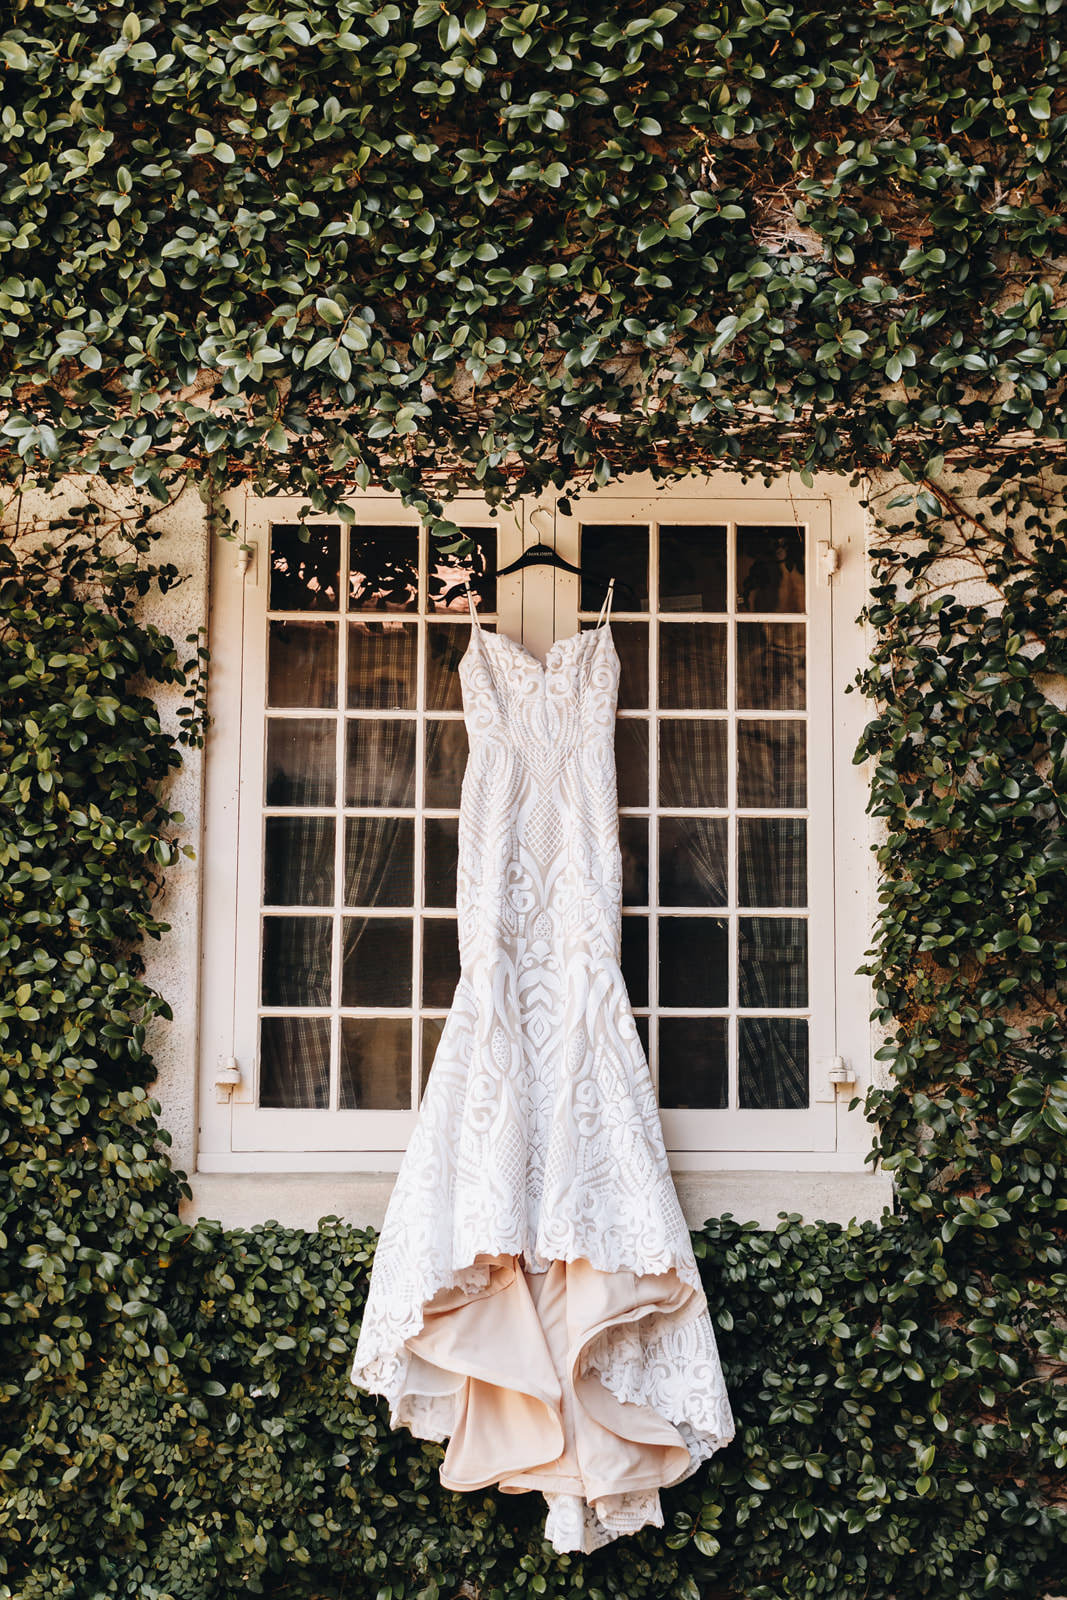 Wedding dress hanging on a window on a greenery wall at Sydonie Mansion.